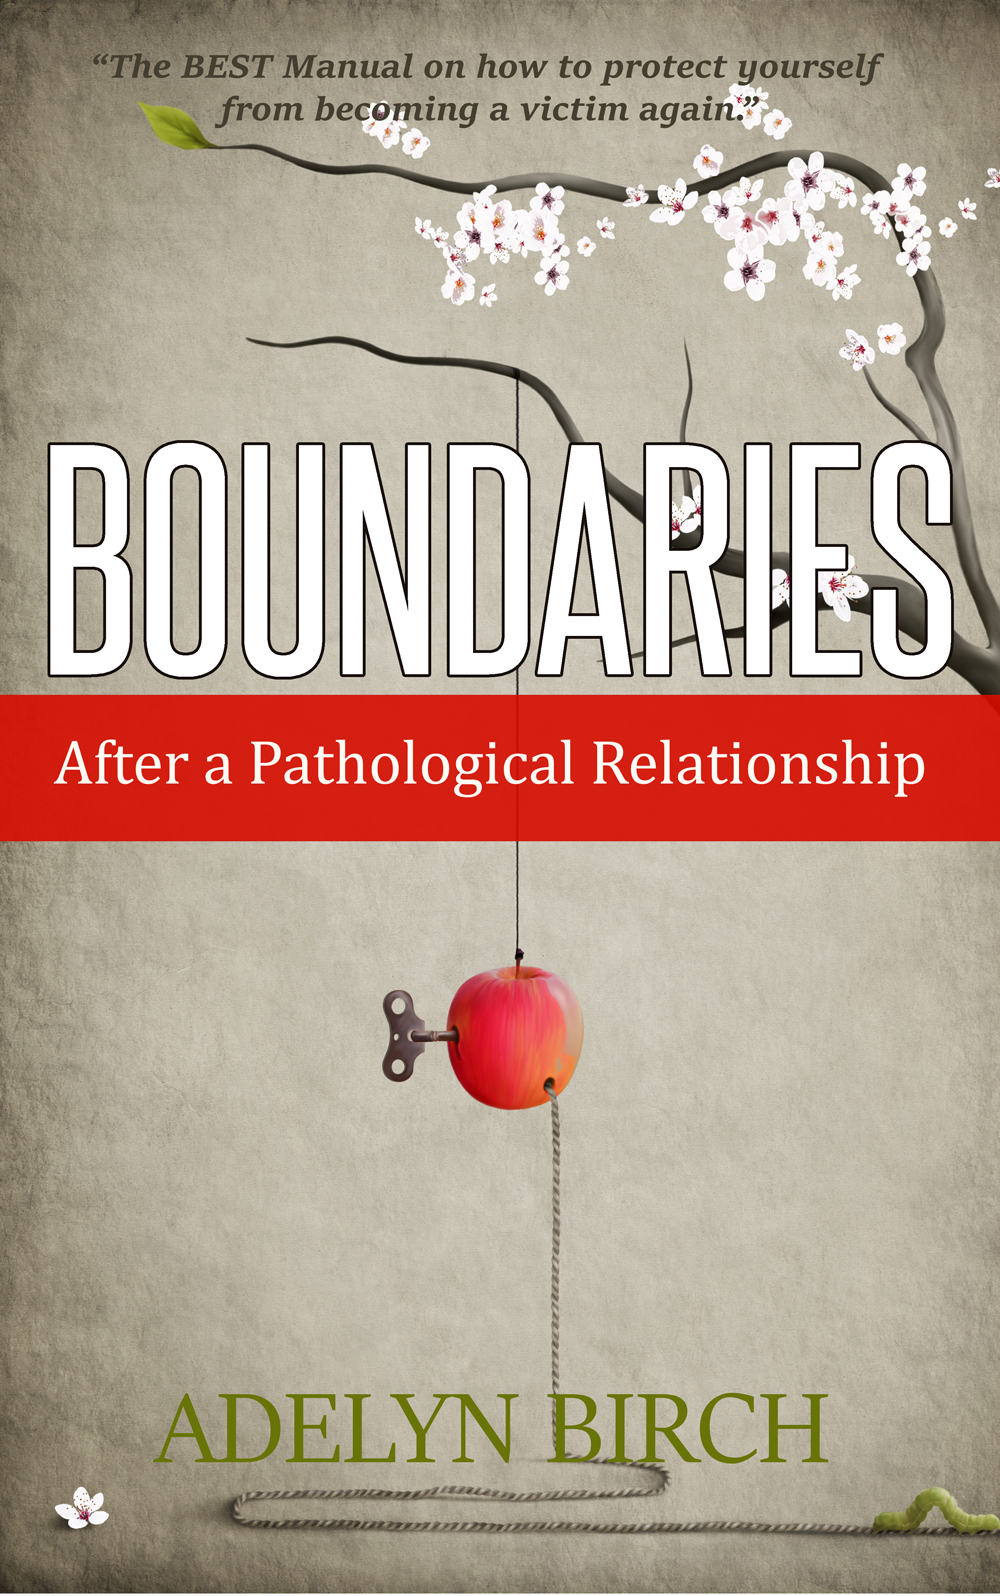 BOUNDARIES: Protect Yourself After a Pathological